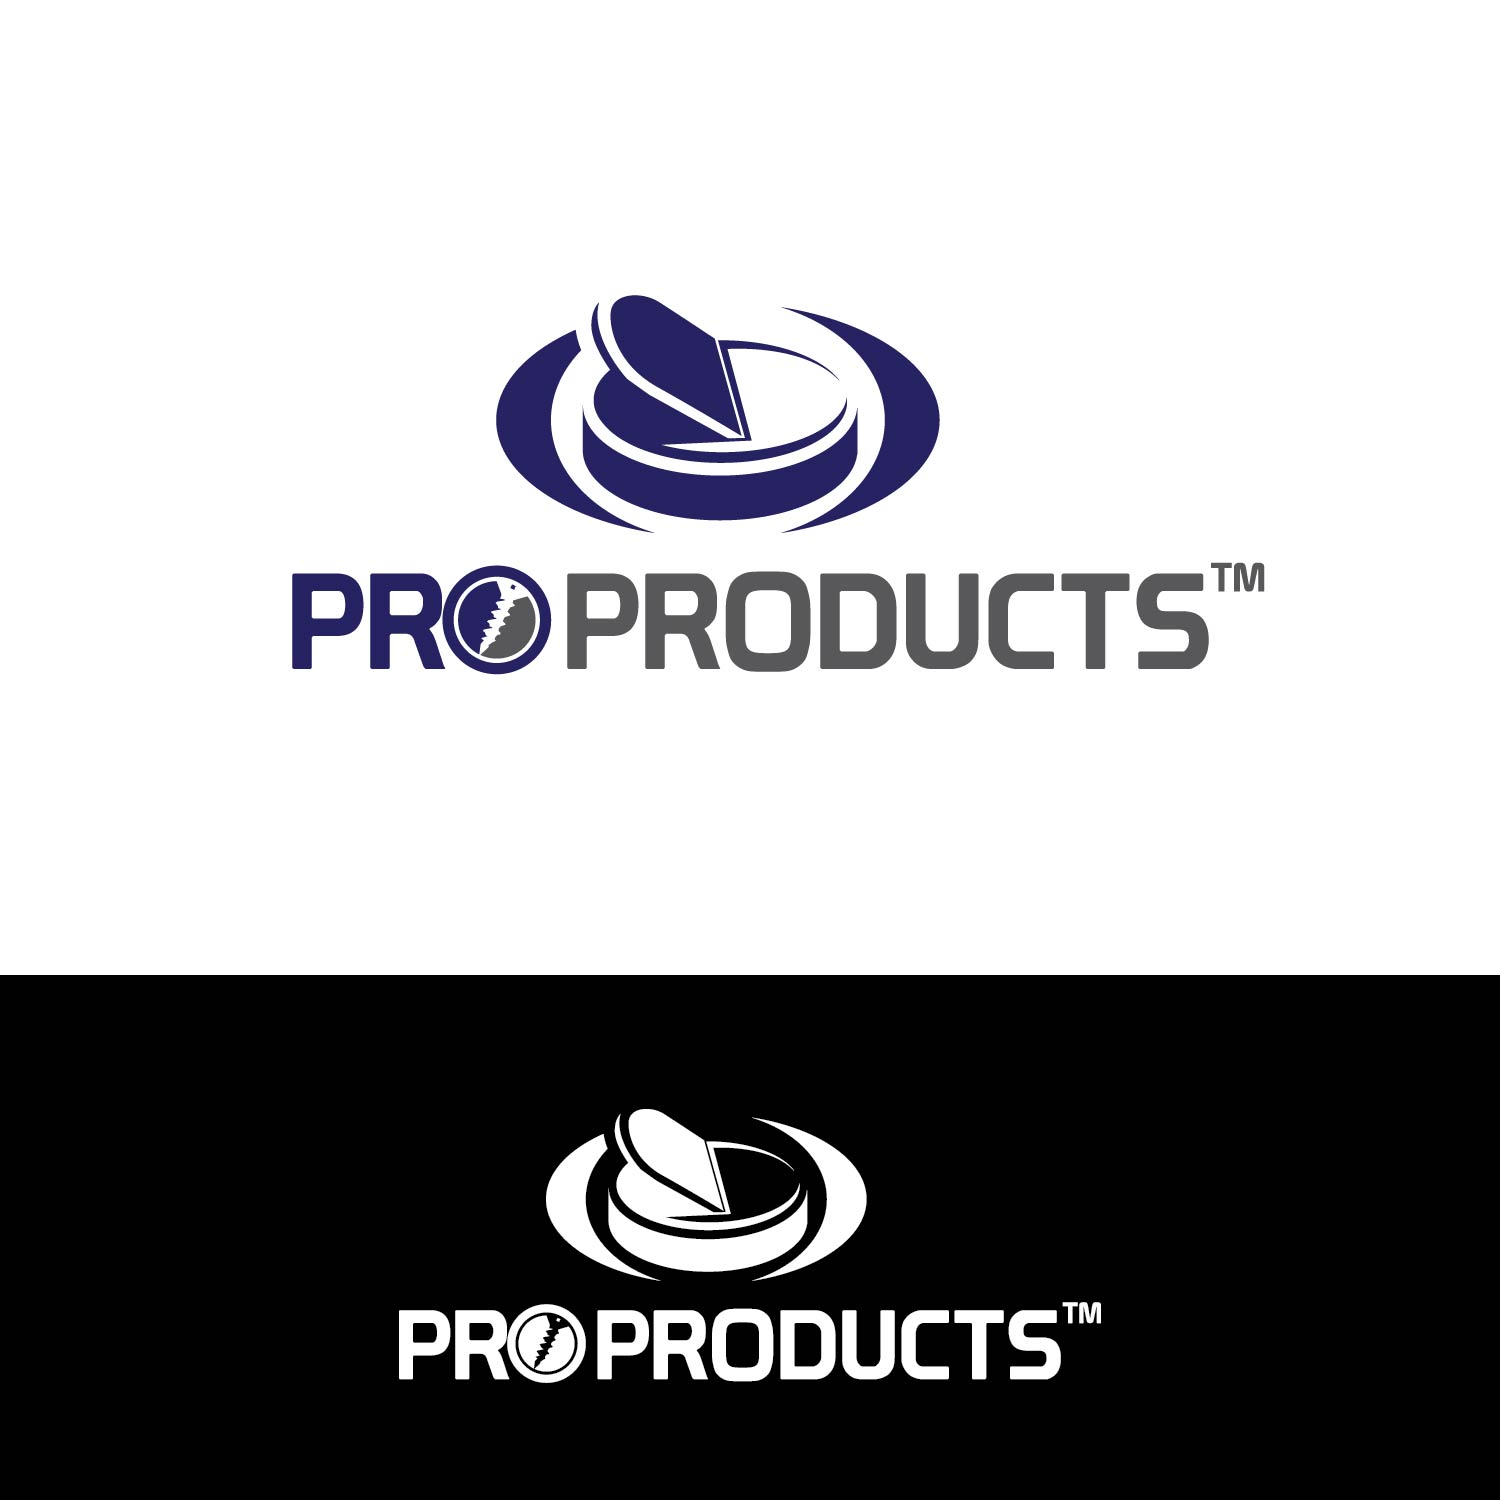 Logo Design by lagalag - Entry No. 30 in the Logo Design Contest Fun yet Professional Logo Design for ProProducts.